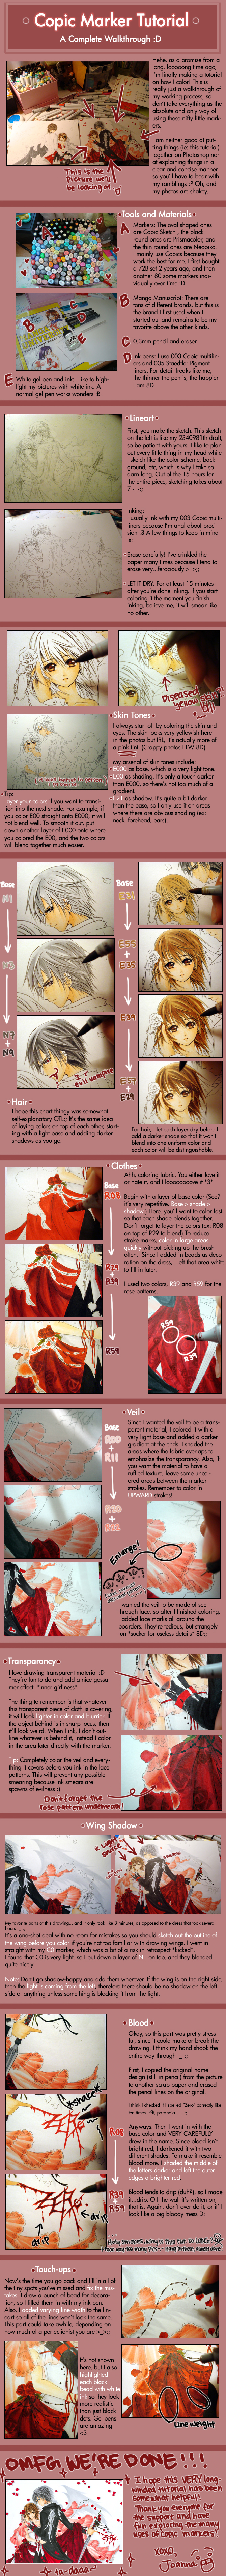 Copic Marker Tutorial I by cartoongirl7